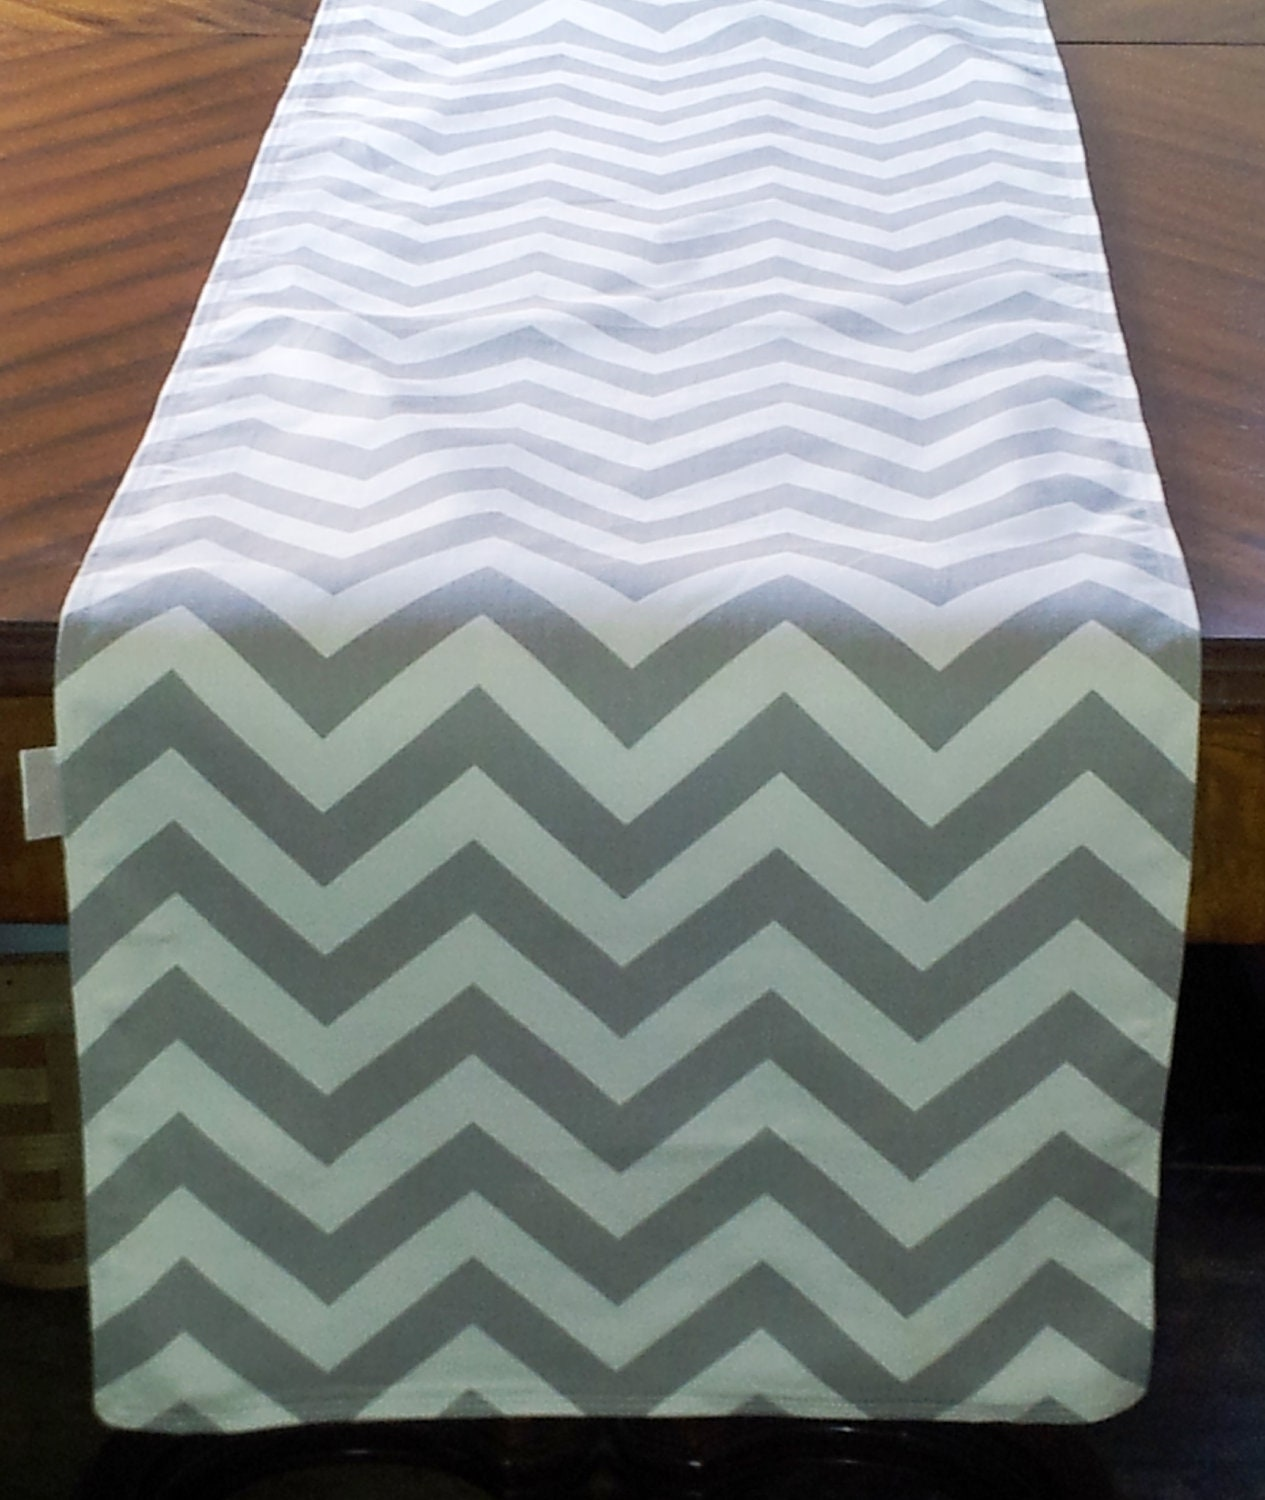 modern table runner images  reverse search - filename ilfullxfullogiy